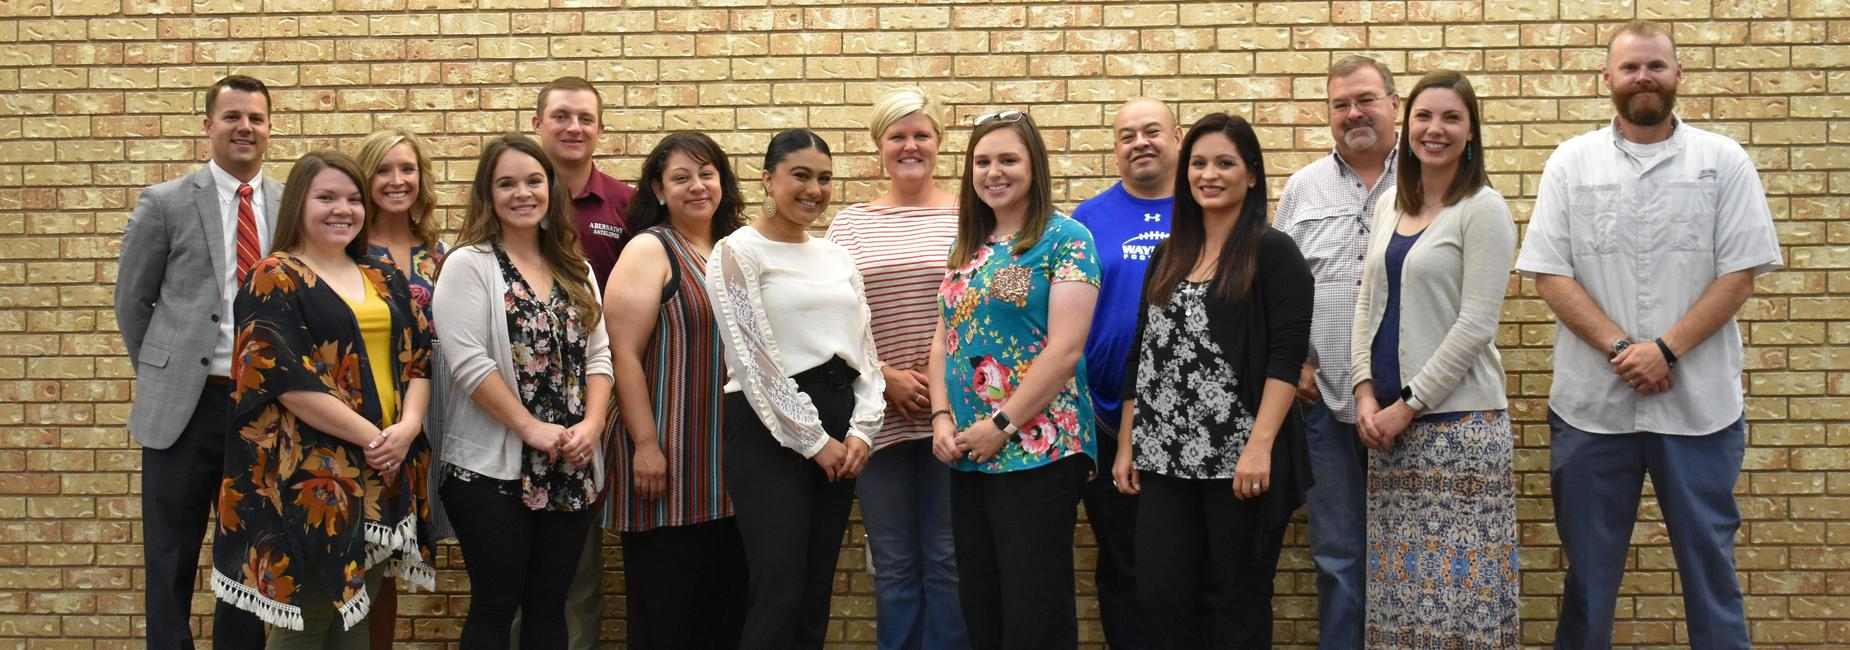 New members of staff for the 2019-2020 school year.